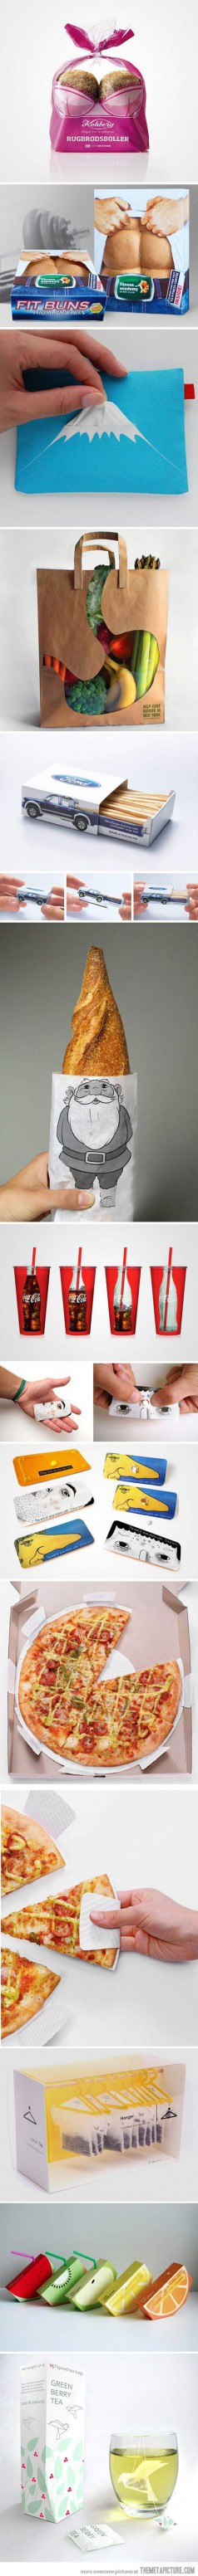 packaging-creativo-funcional